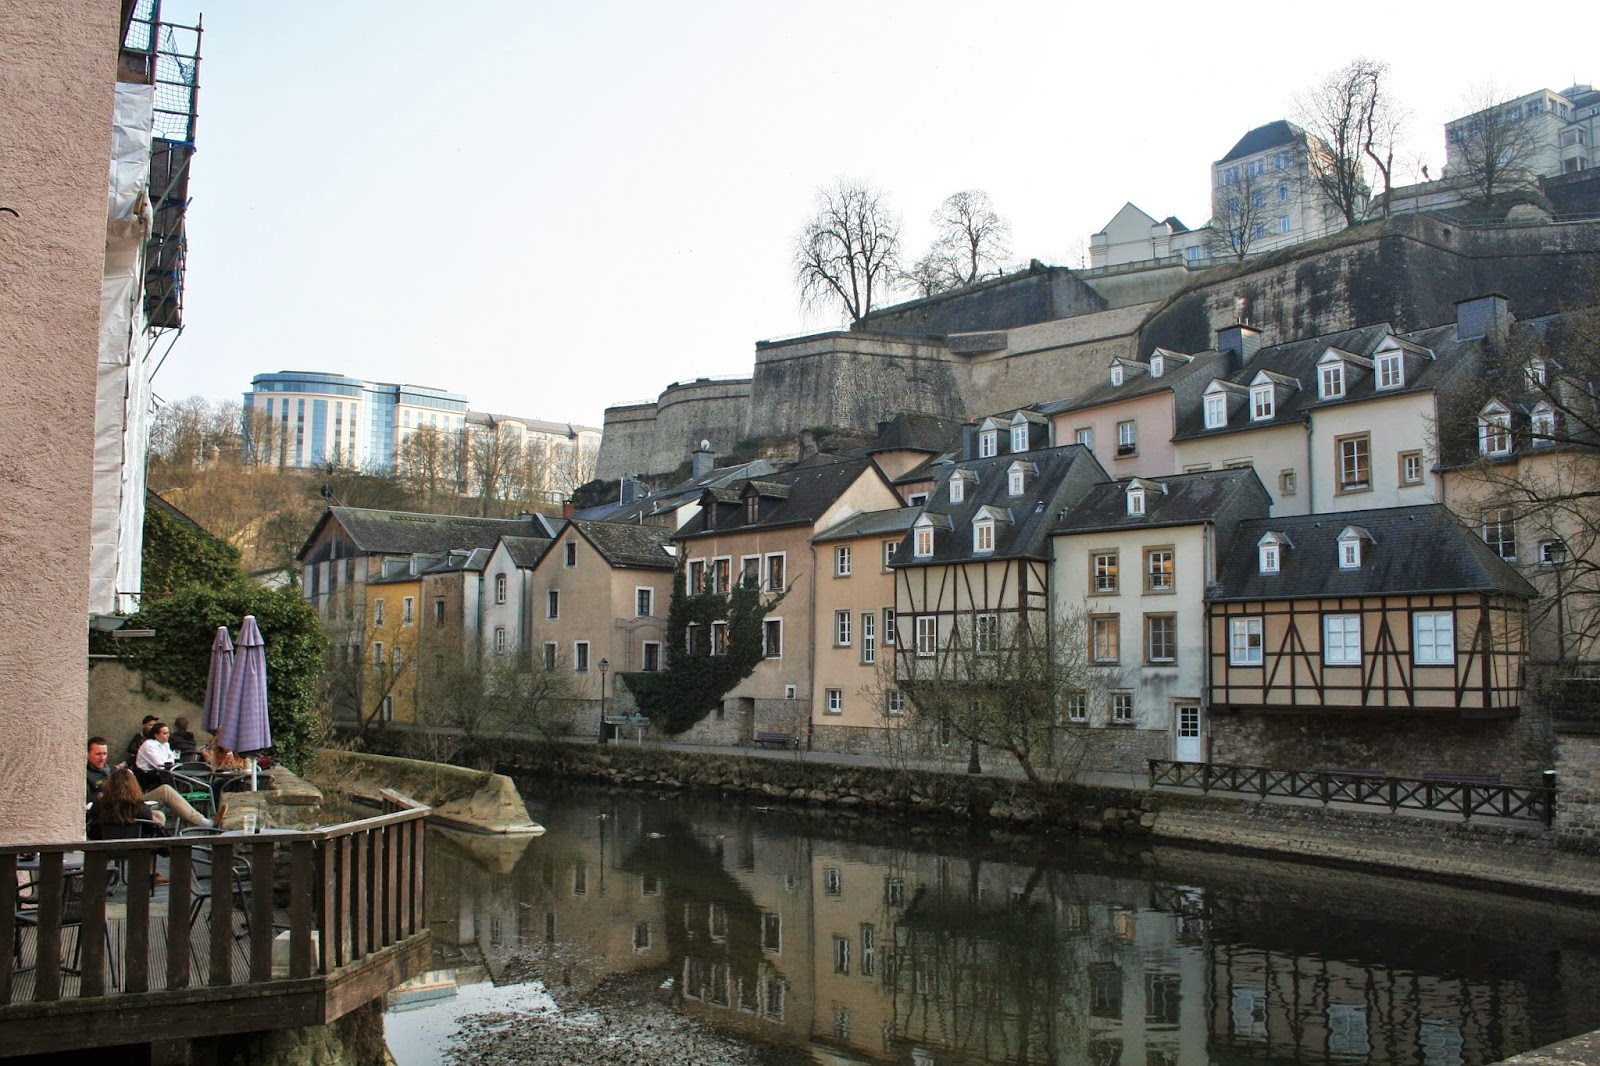 travelling around my world 10 curiosidades sobre o luxemburgo